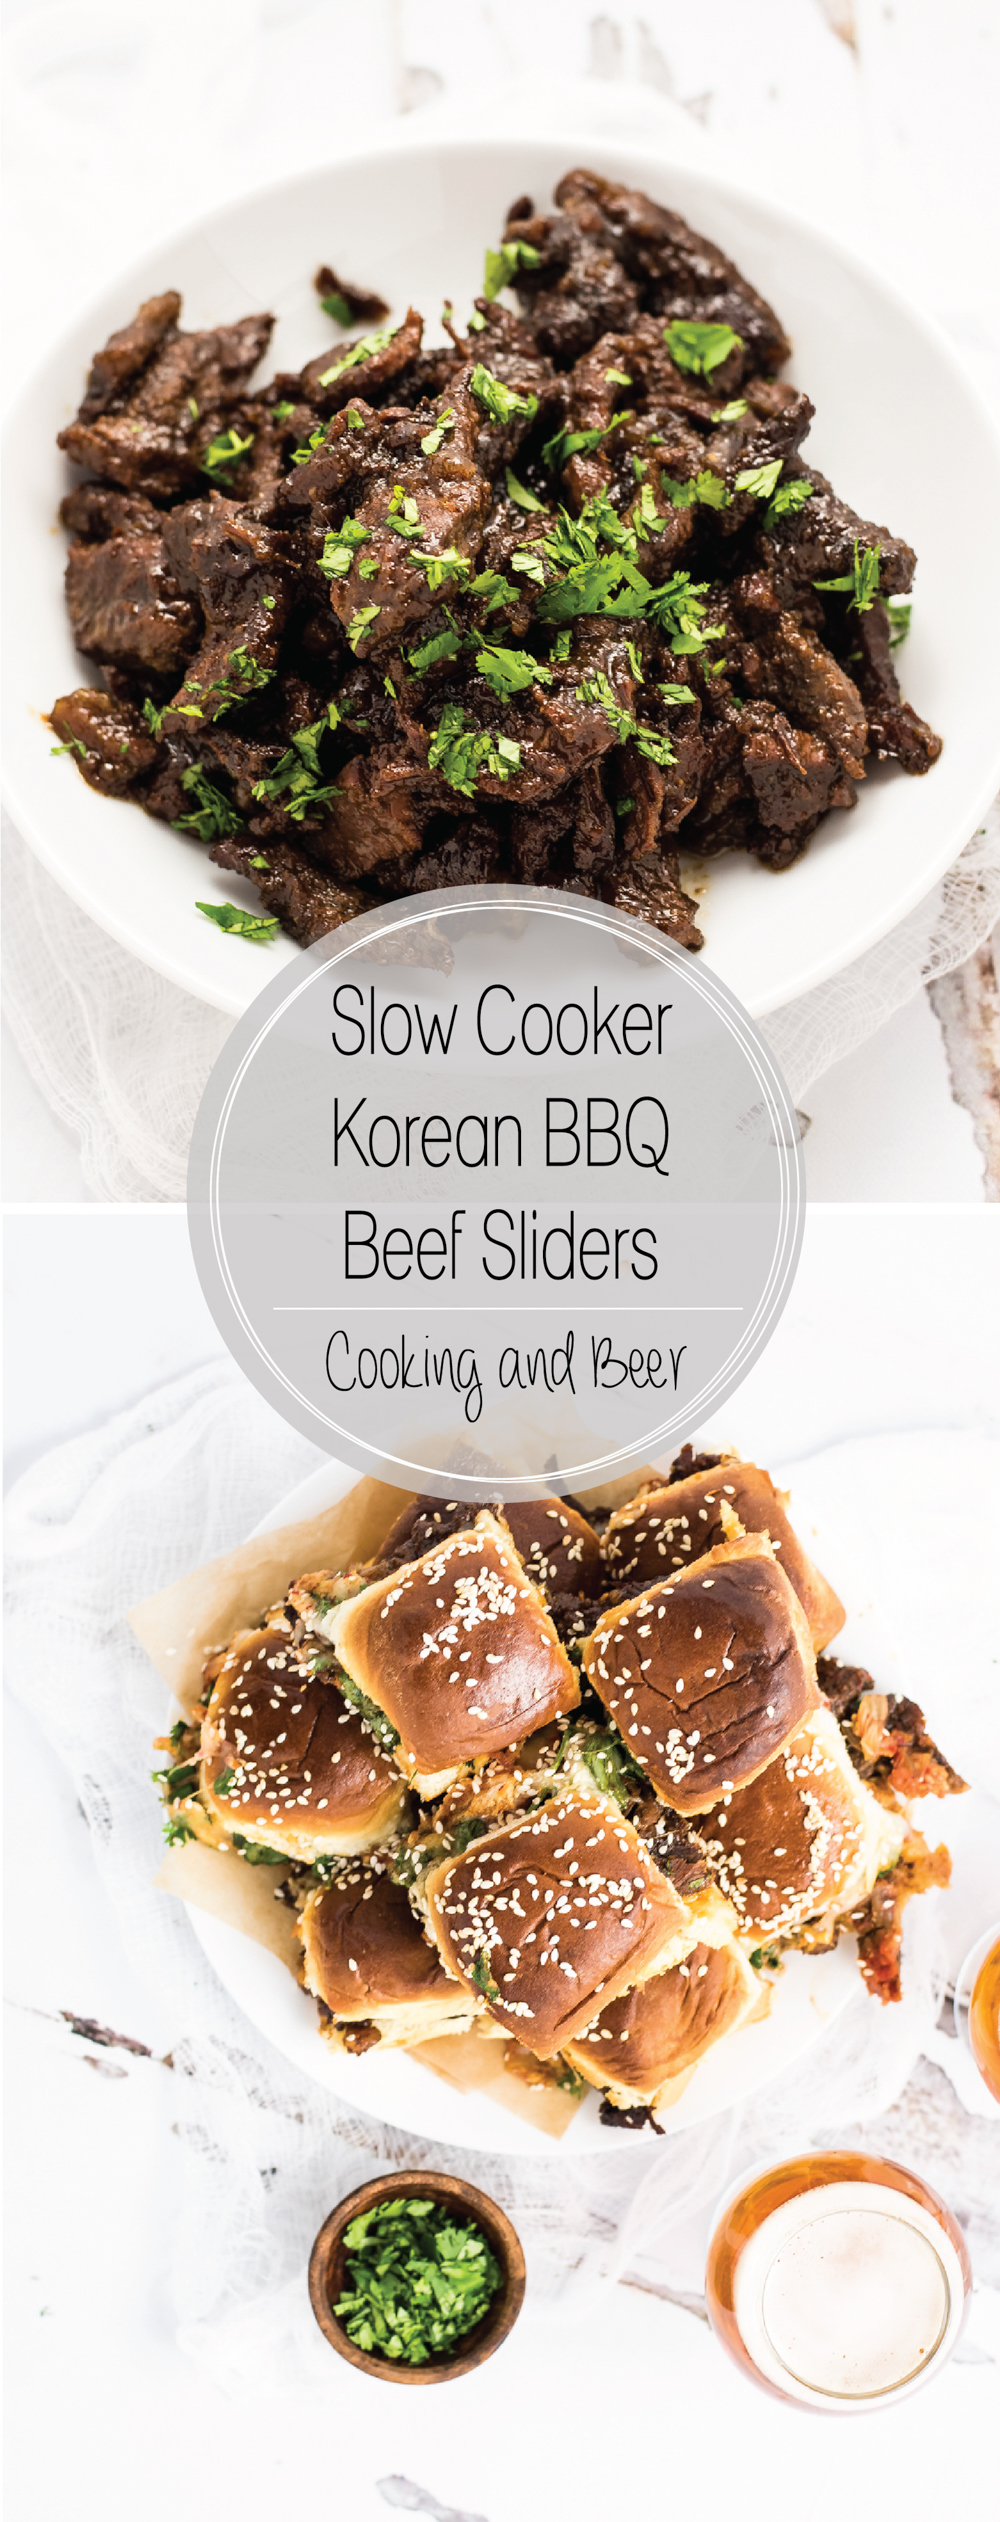 Slow Cooker Korean BBQ Beef Sliders are a super simple, family-friendly, amazingly delicious snack or dinner recipe!